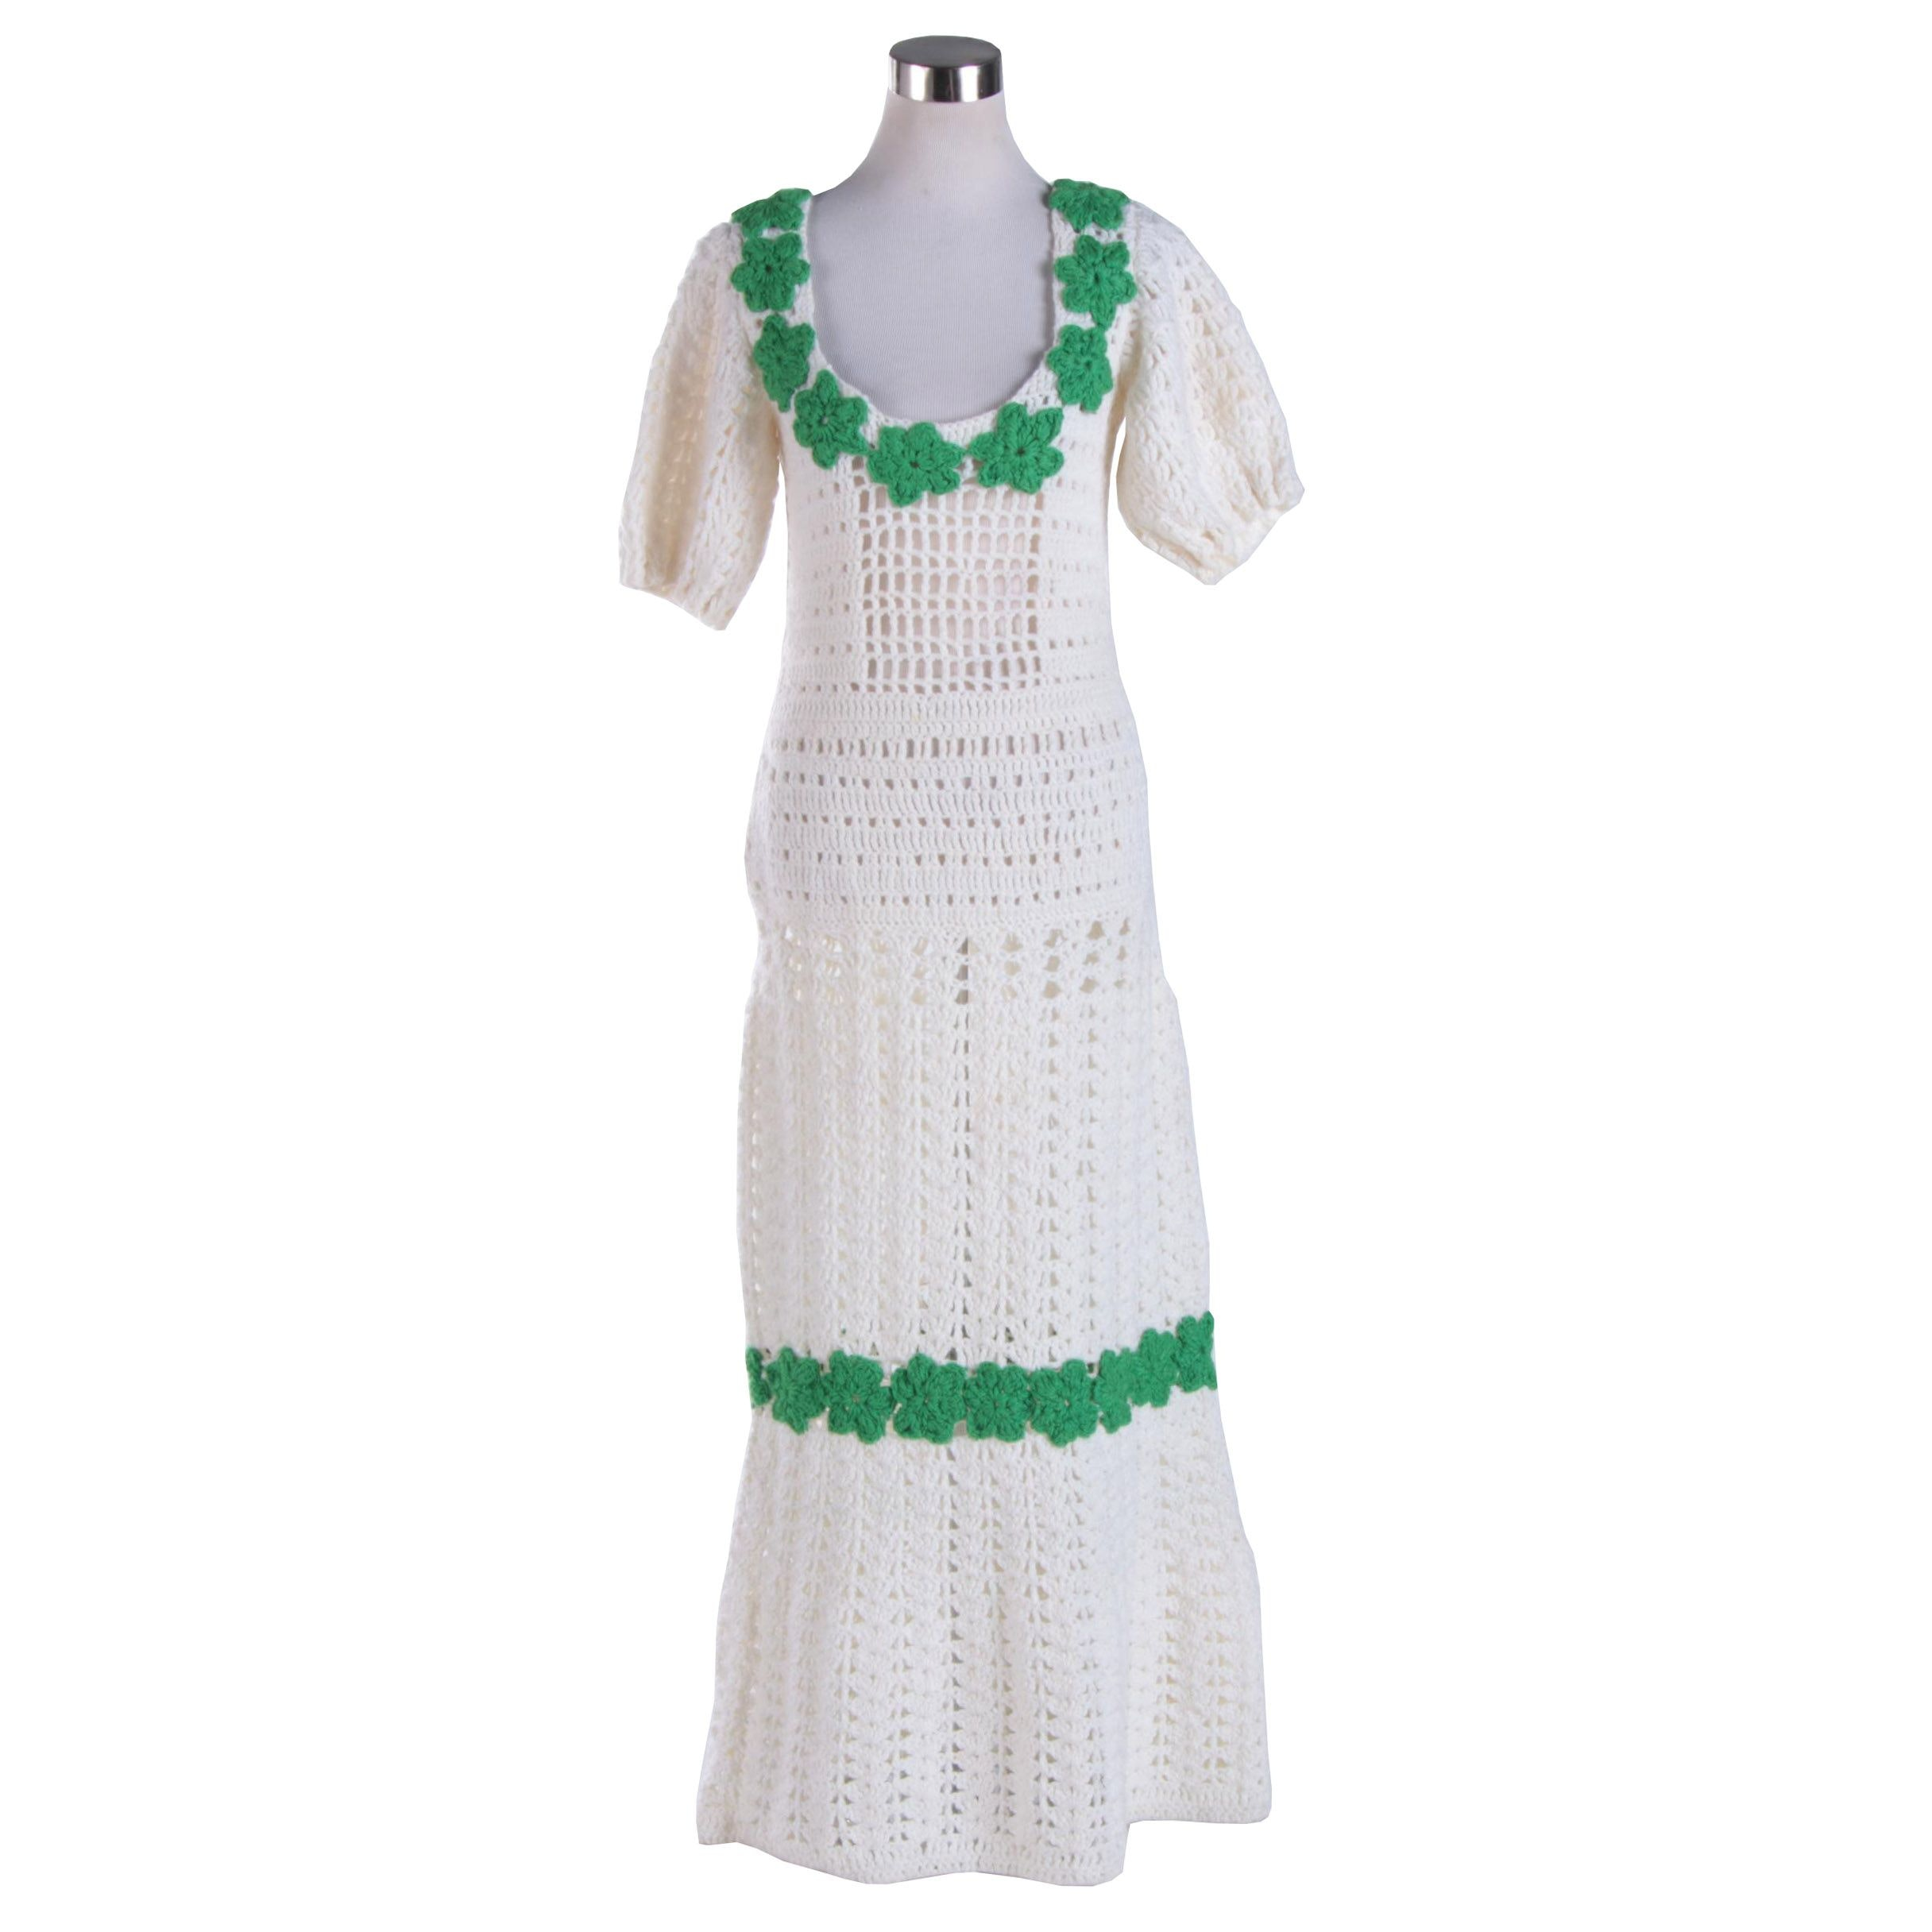 1960s Vintage Hand Crocheted Maxi Dress